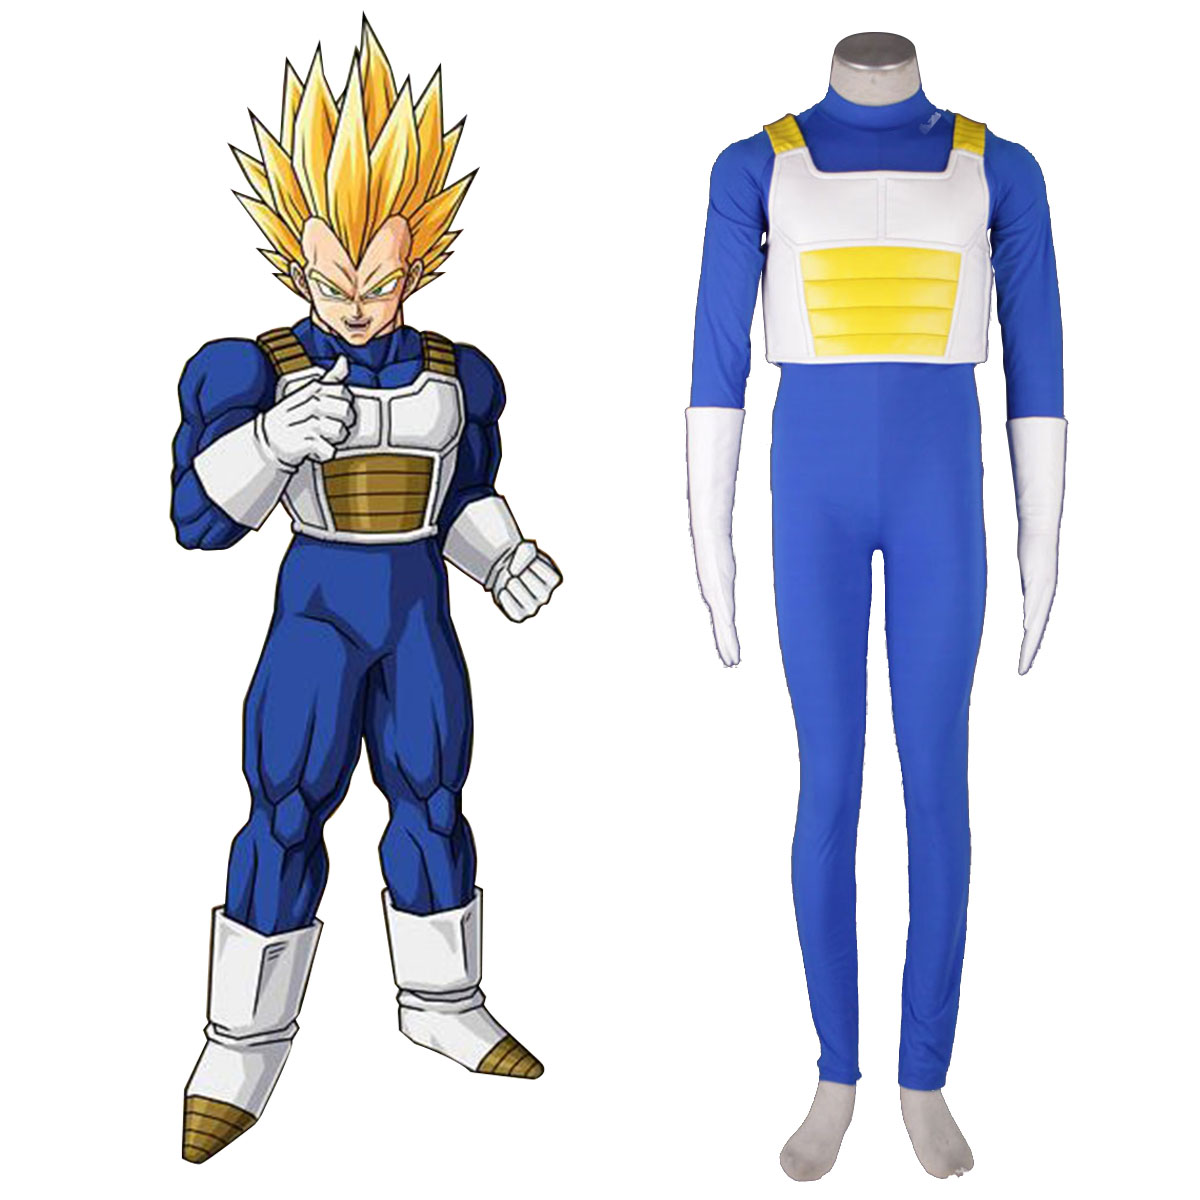 Dragon Ball Vegeta 3 Anime Cosplay Costumes Outfit